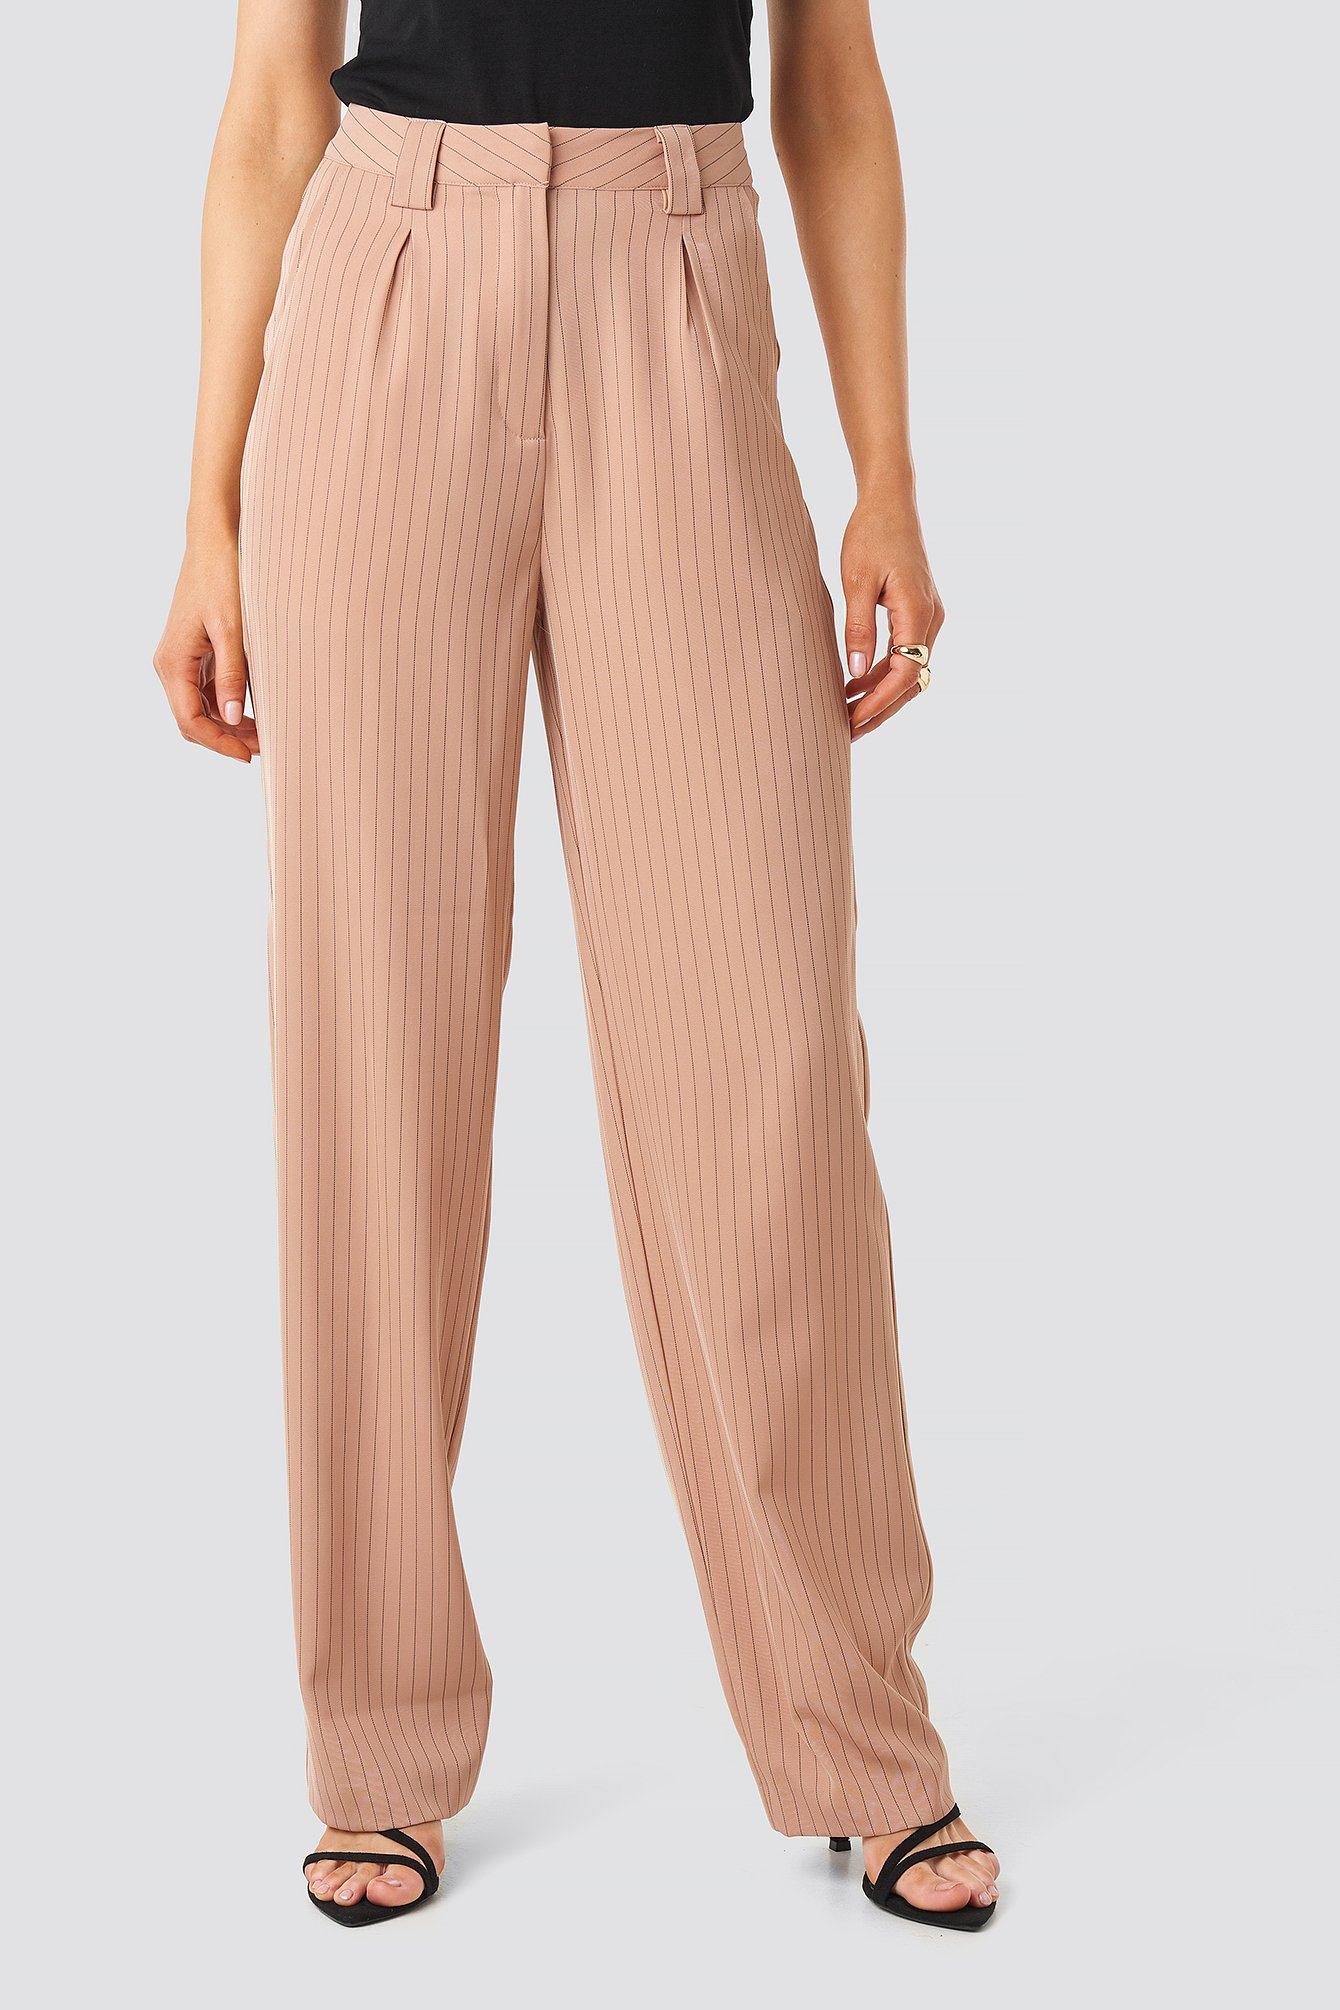 Dusty Pink Flared Striped Pants